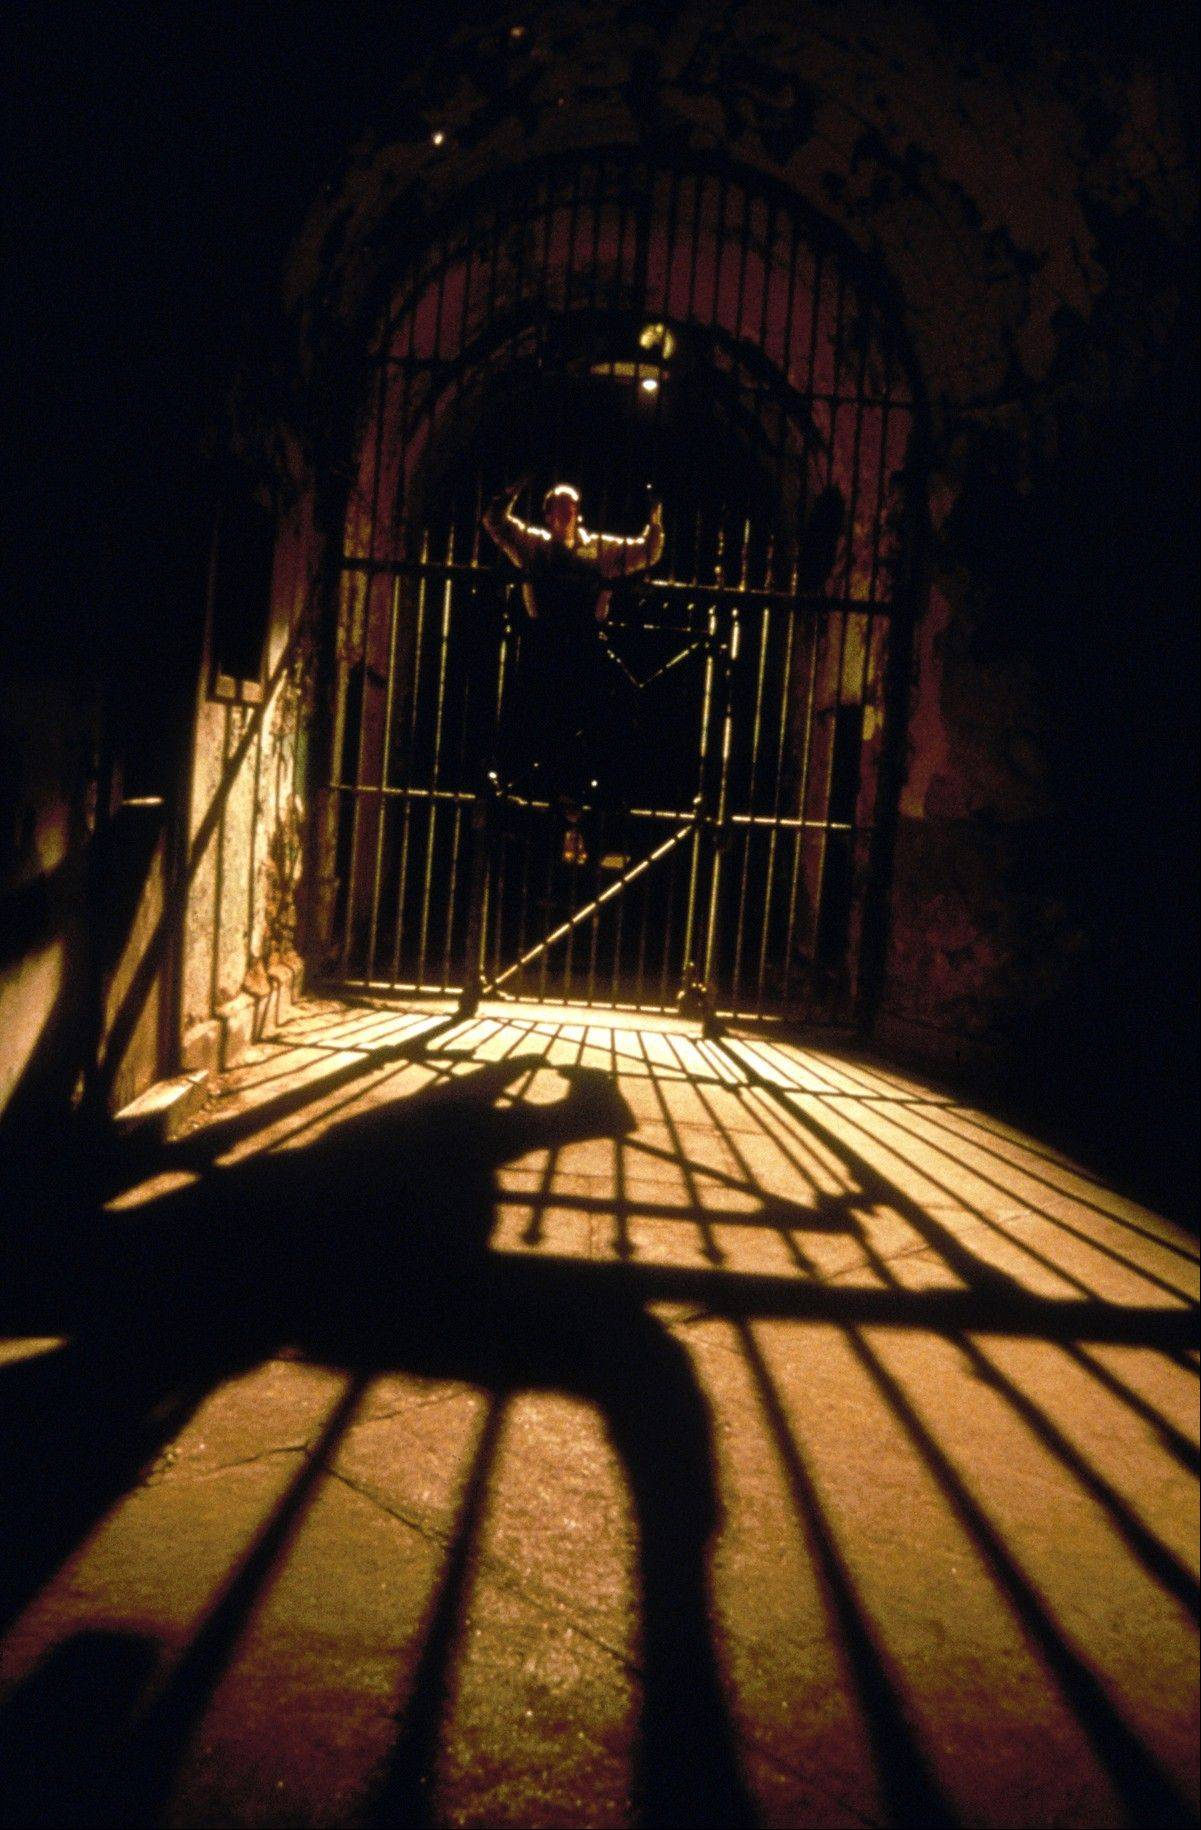 "More than 100,000 people visit the former state prison, Eastern State Penitentiary, which closed in the 1970s, each fall to experience its reincarnation as a haunted house called ""Terror Behind the Walls."""